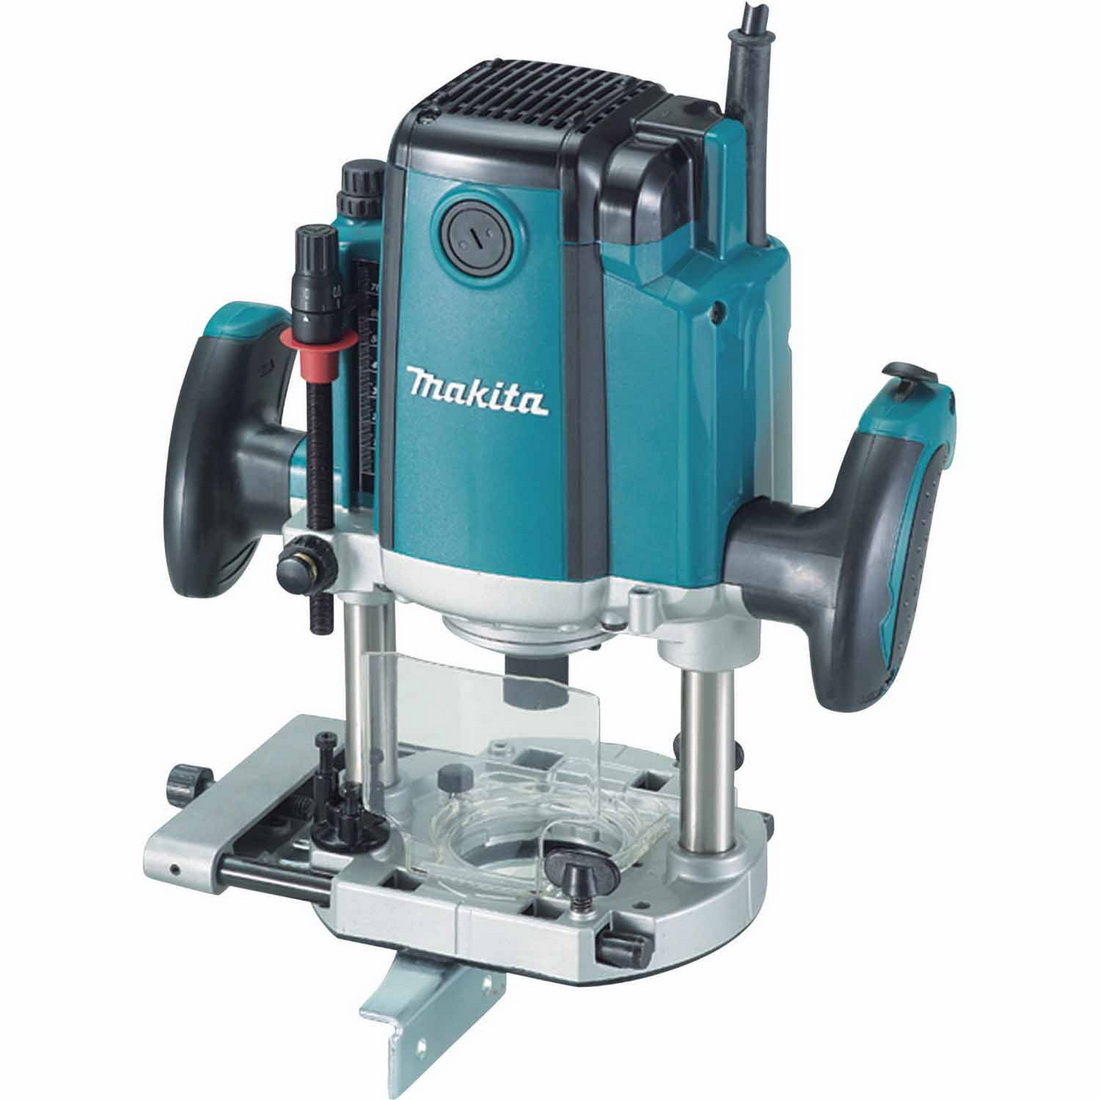 Plunge Router With Case 12.7mm 1850W